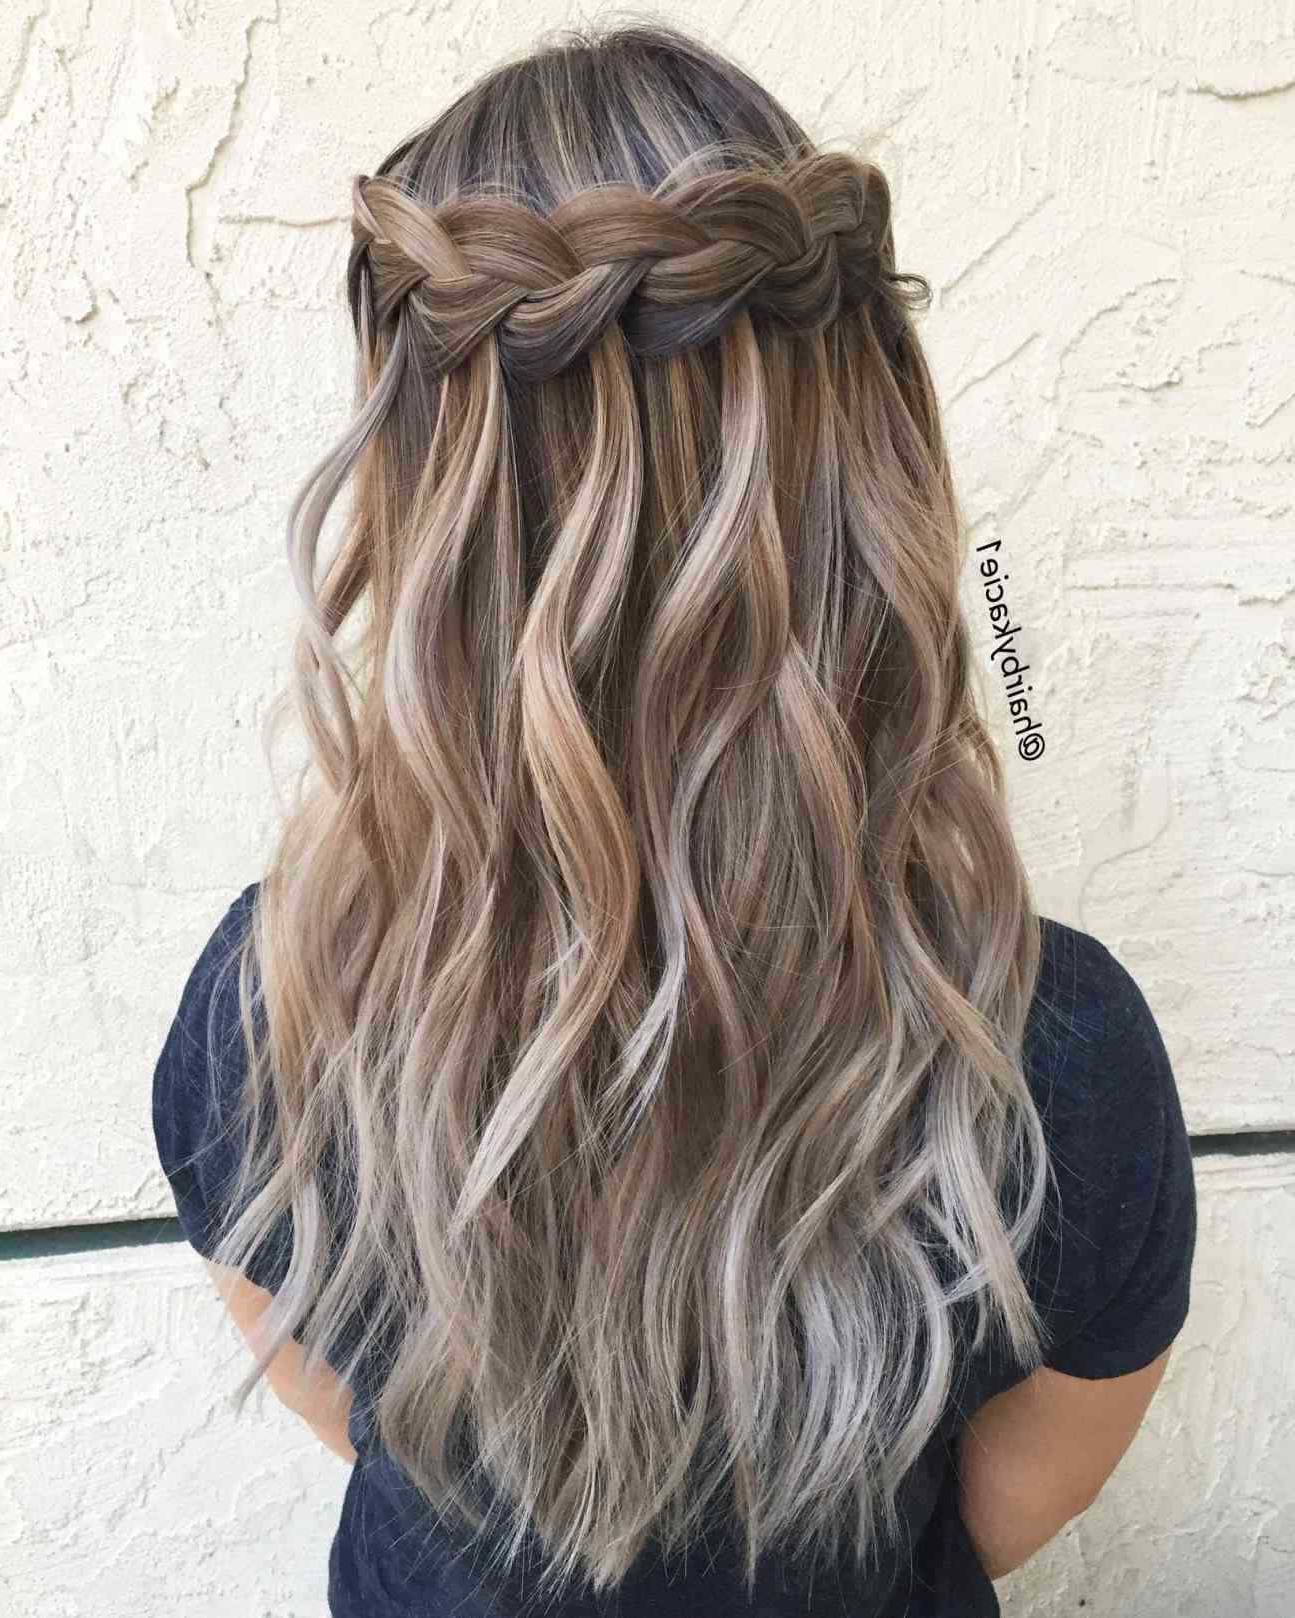 2017 Homecoming Medium Hairstyles With Homecoming Hairstyles For Medium Length Half Up Curls Best Of (View 2 of 20)